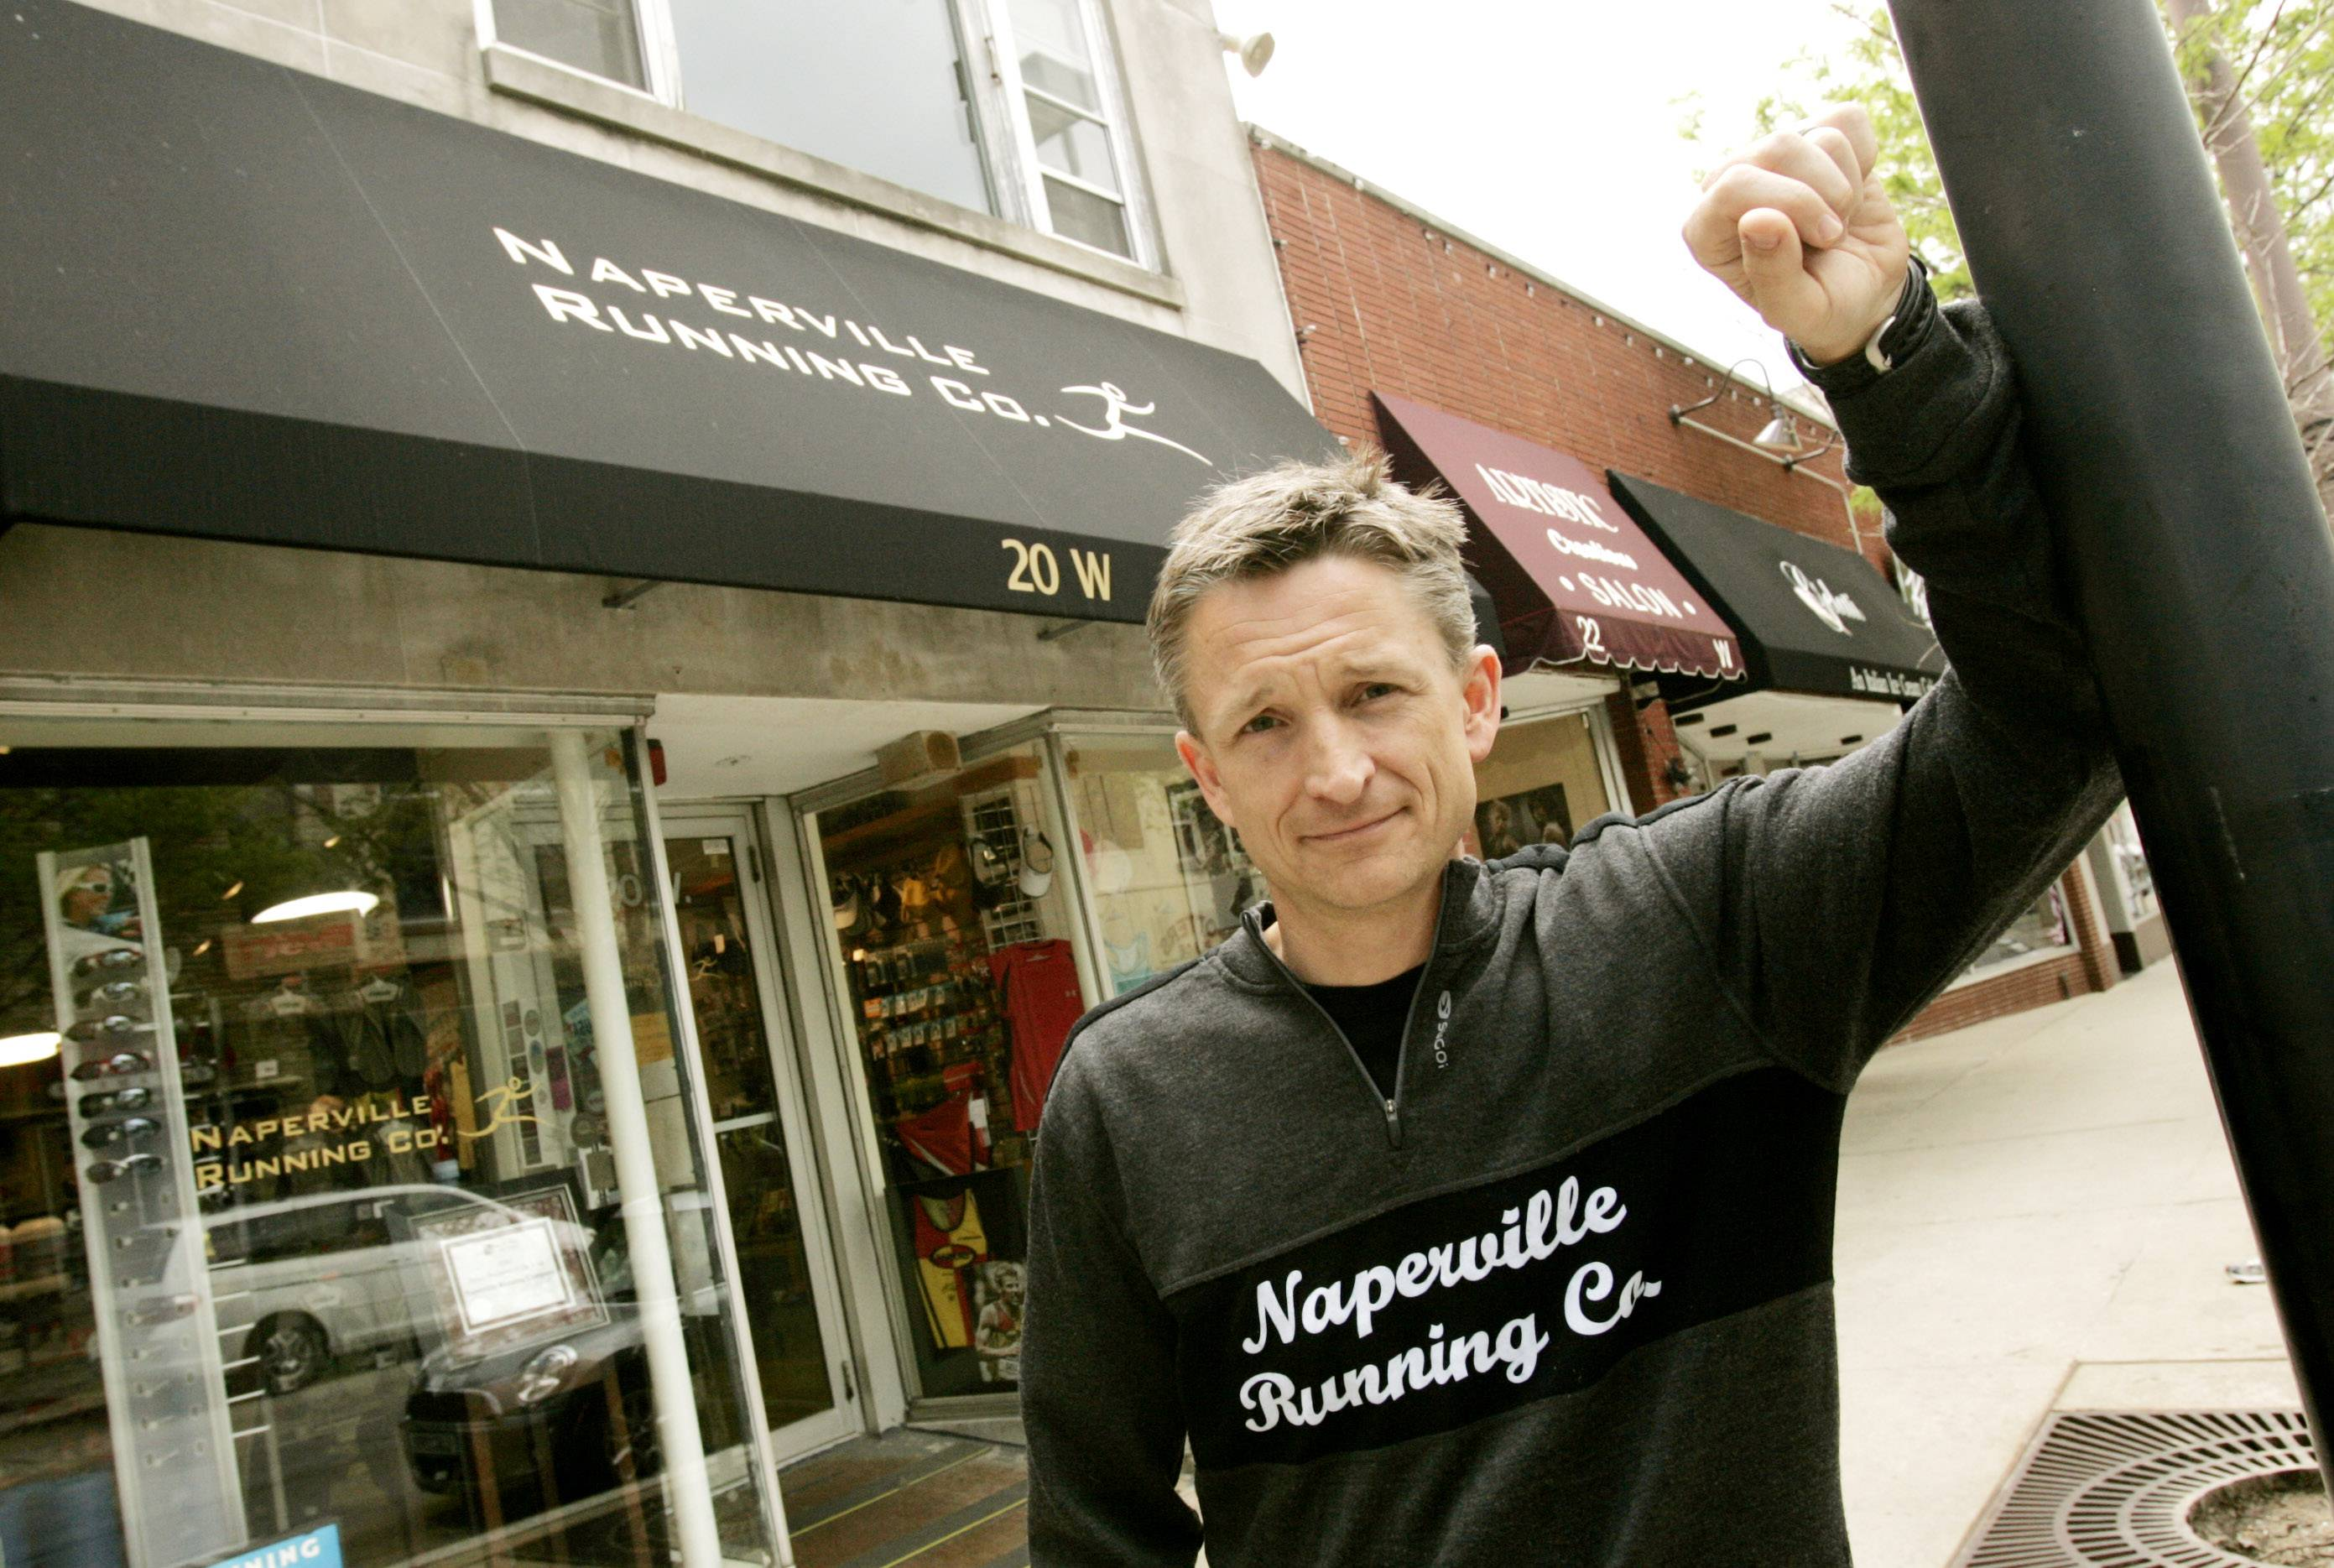 Naperville Running Company owner Kris Hartner is excited to open a third store in downtown Wheaton later this year. The shop will be housed in the former train depot on Front Street, between Hale and Main streets.